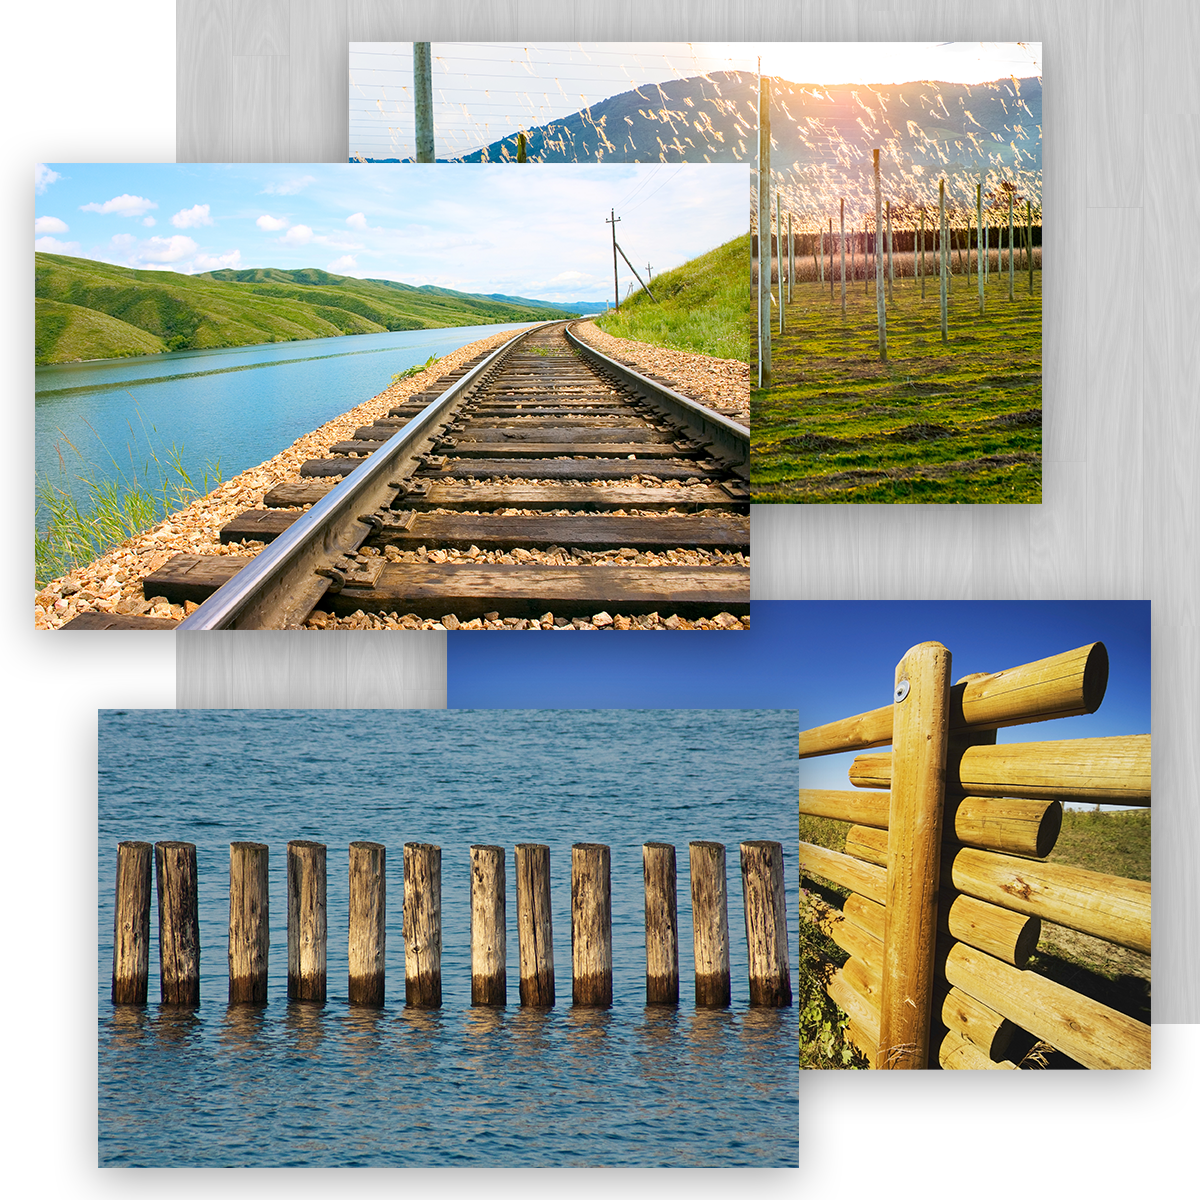 Collage of Westlake Timber Supply Products in Use including Used Railroad ties, Fence Posts, Pilings, and Hop Poles